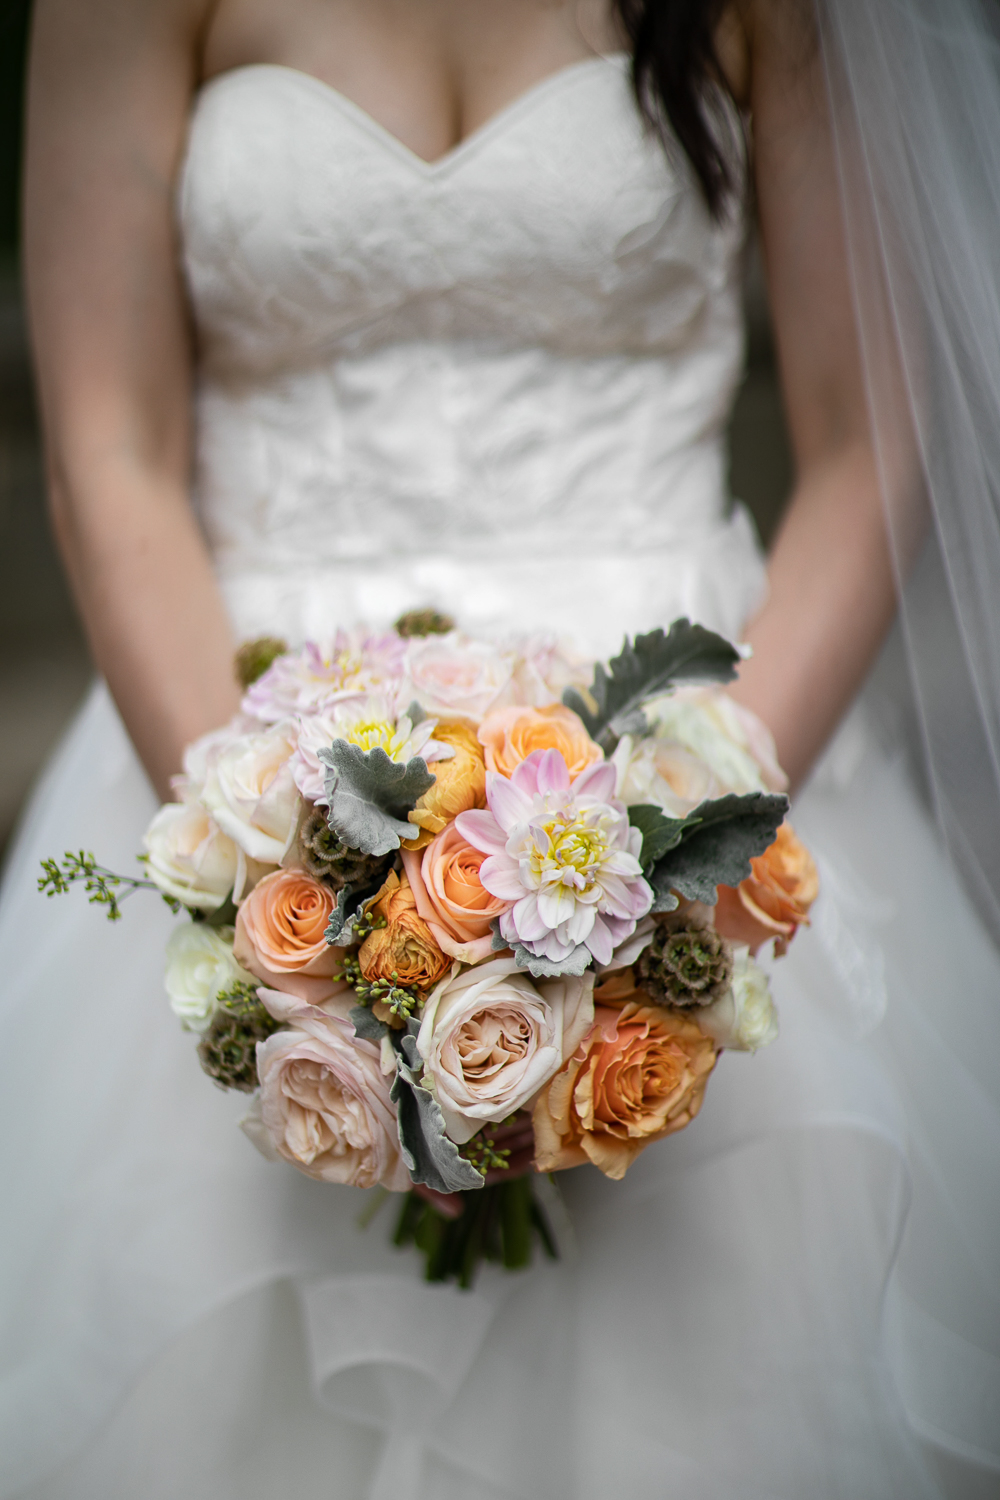 Close up portrait of a bride's white, pink, and peach wedding bouquet.   Lincoln Center Wedding Photos   Jason and Susanna's Glam NYC Elopement